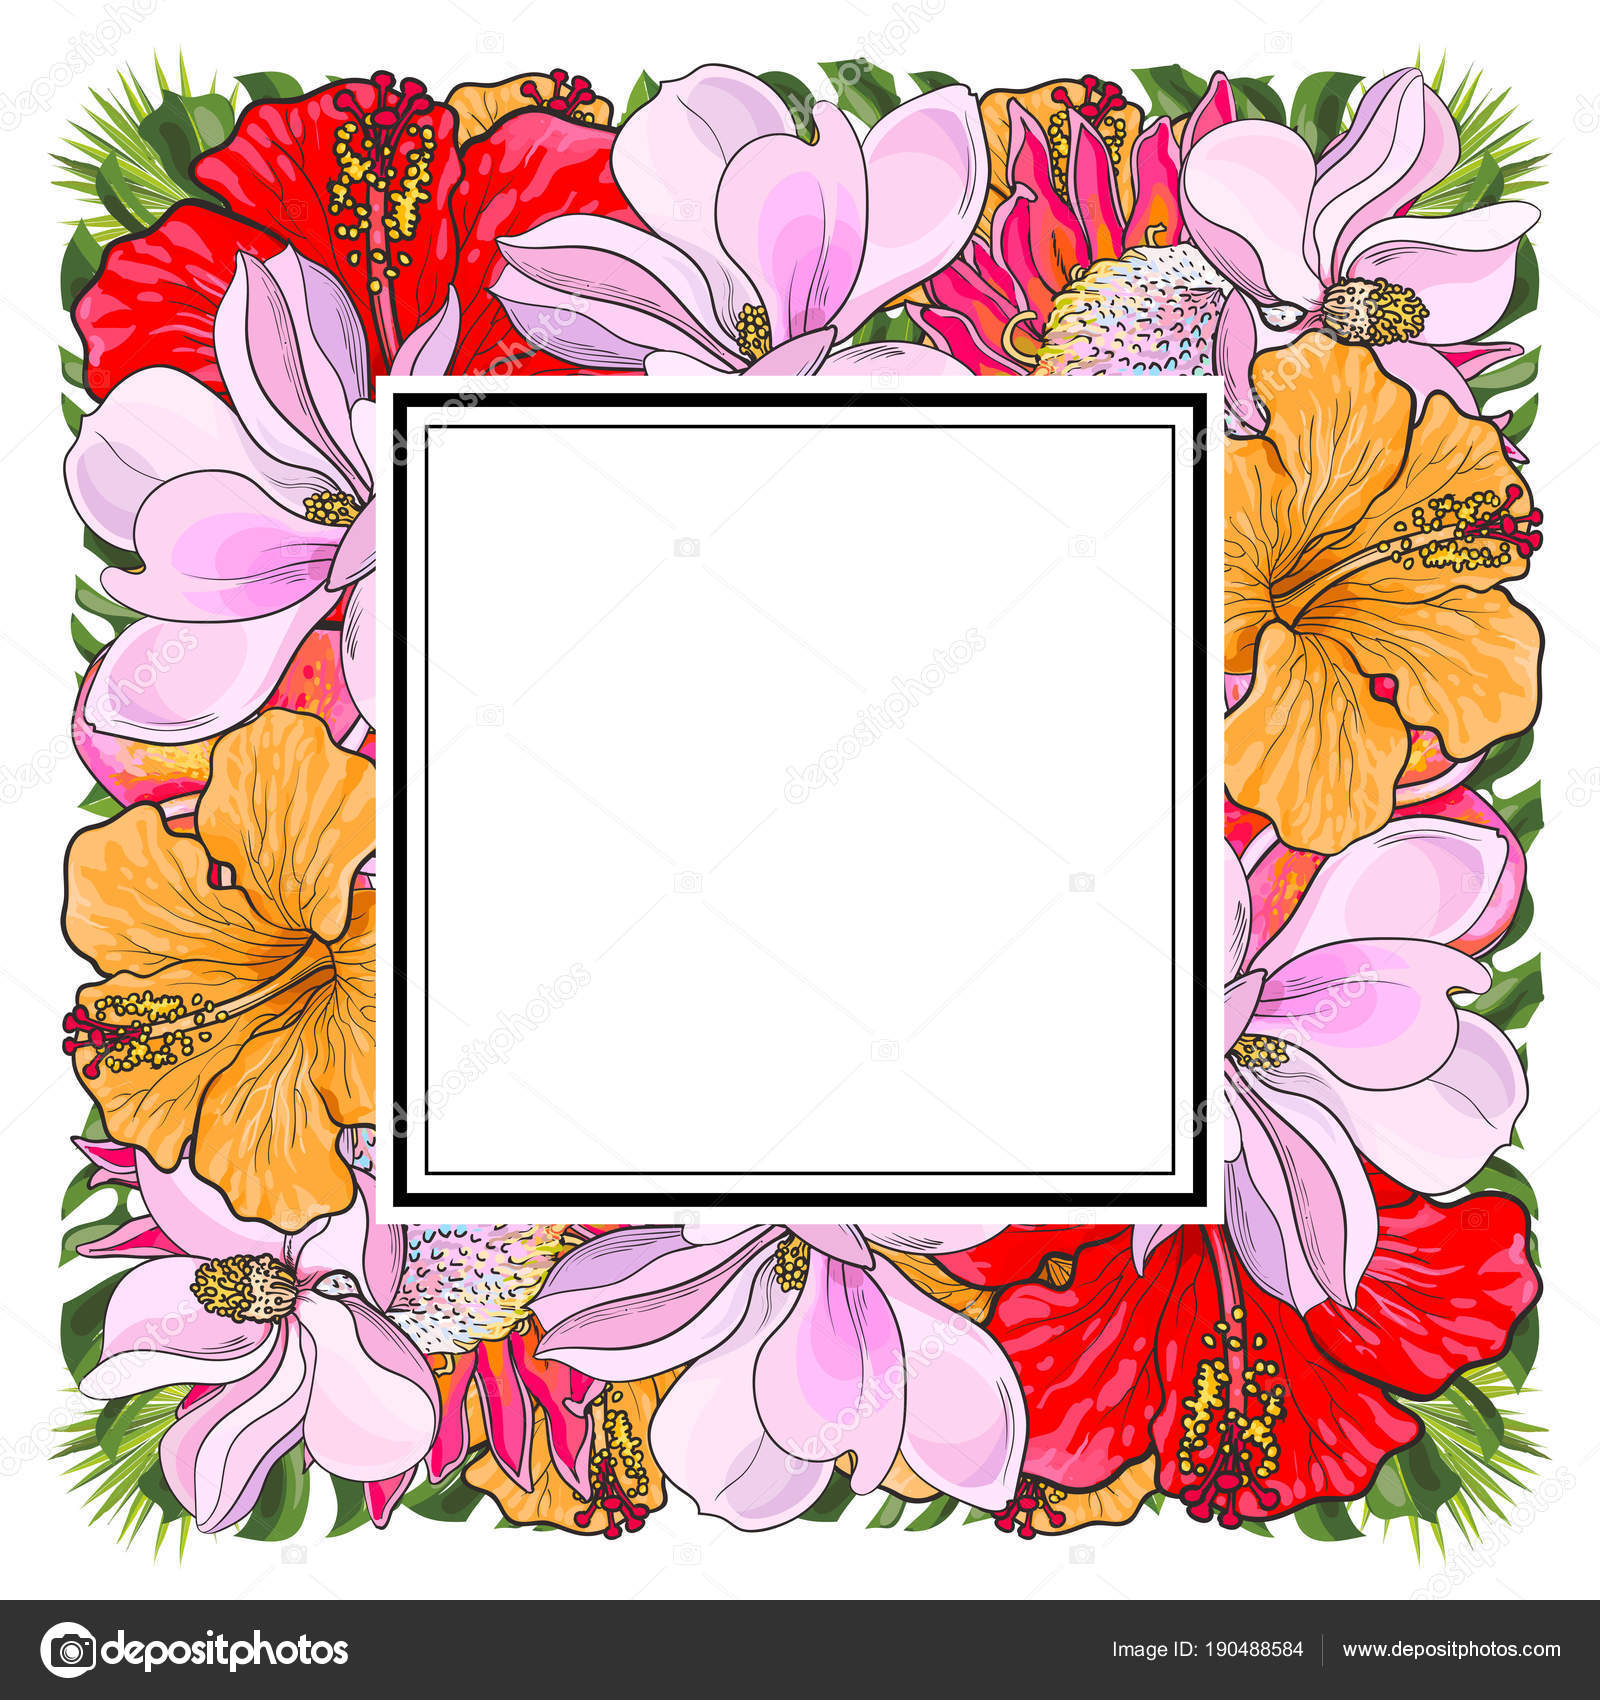 Tropical Flowers And Palm Leaves In Floral Composition In Square